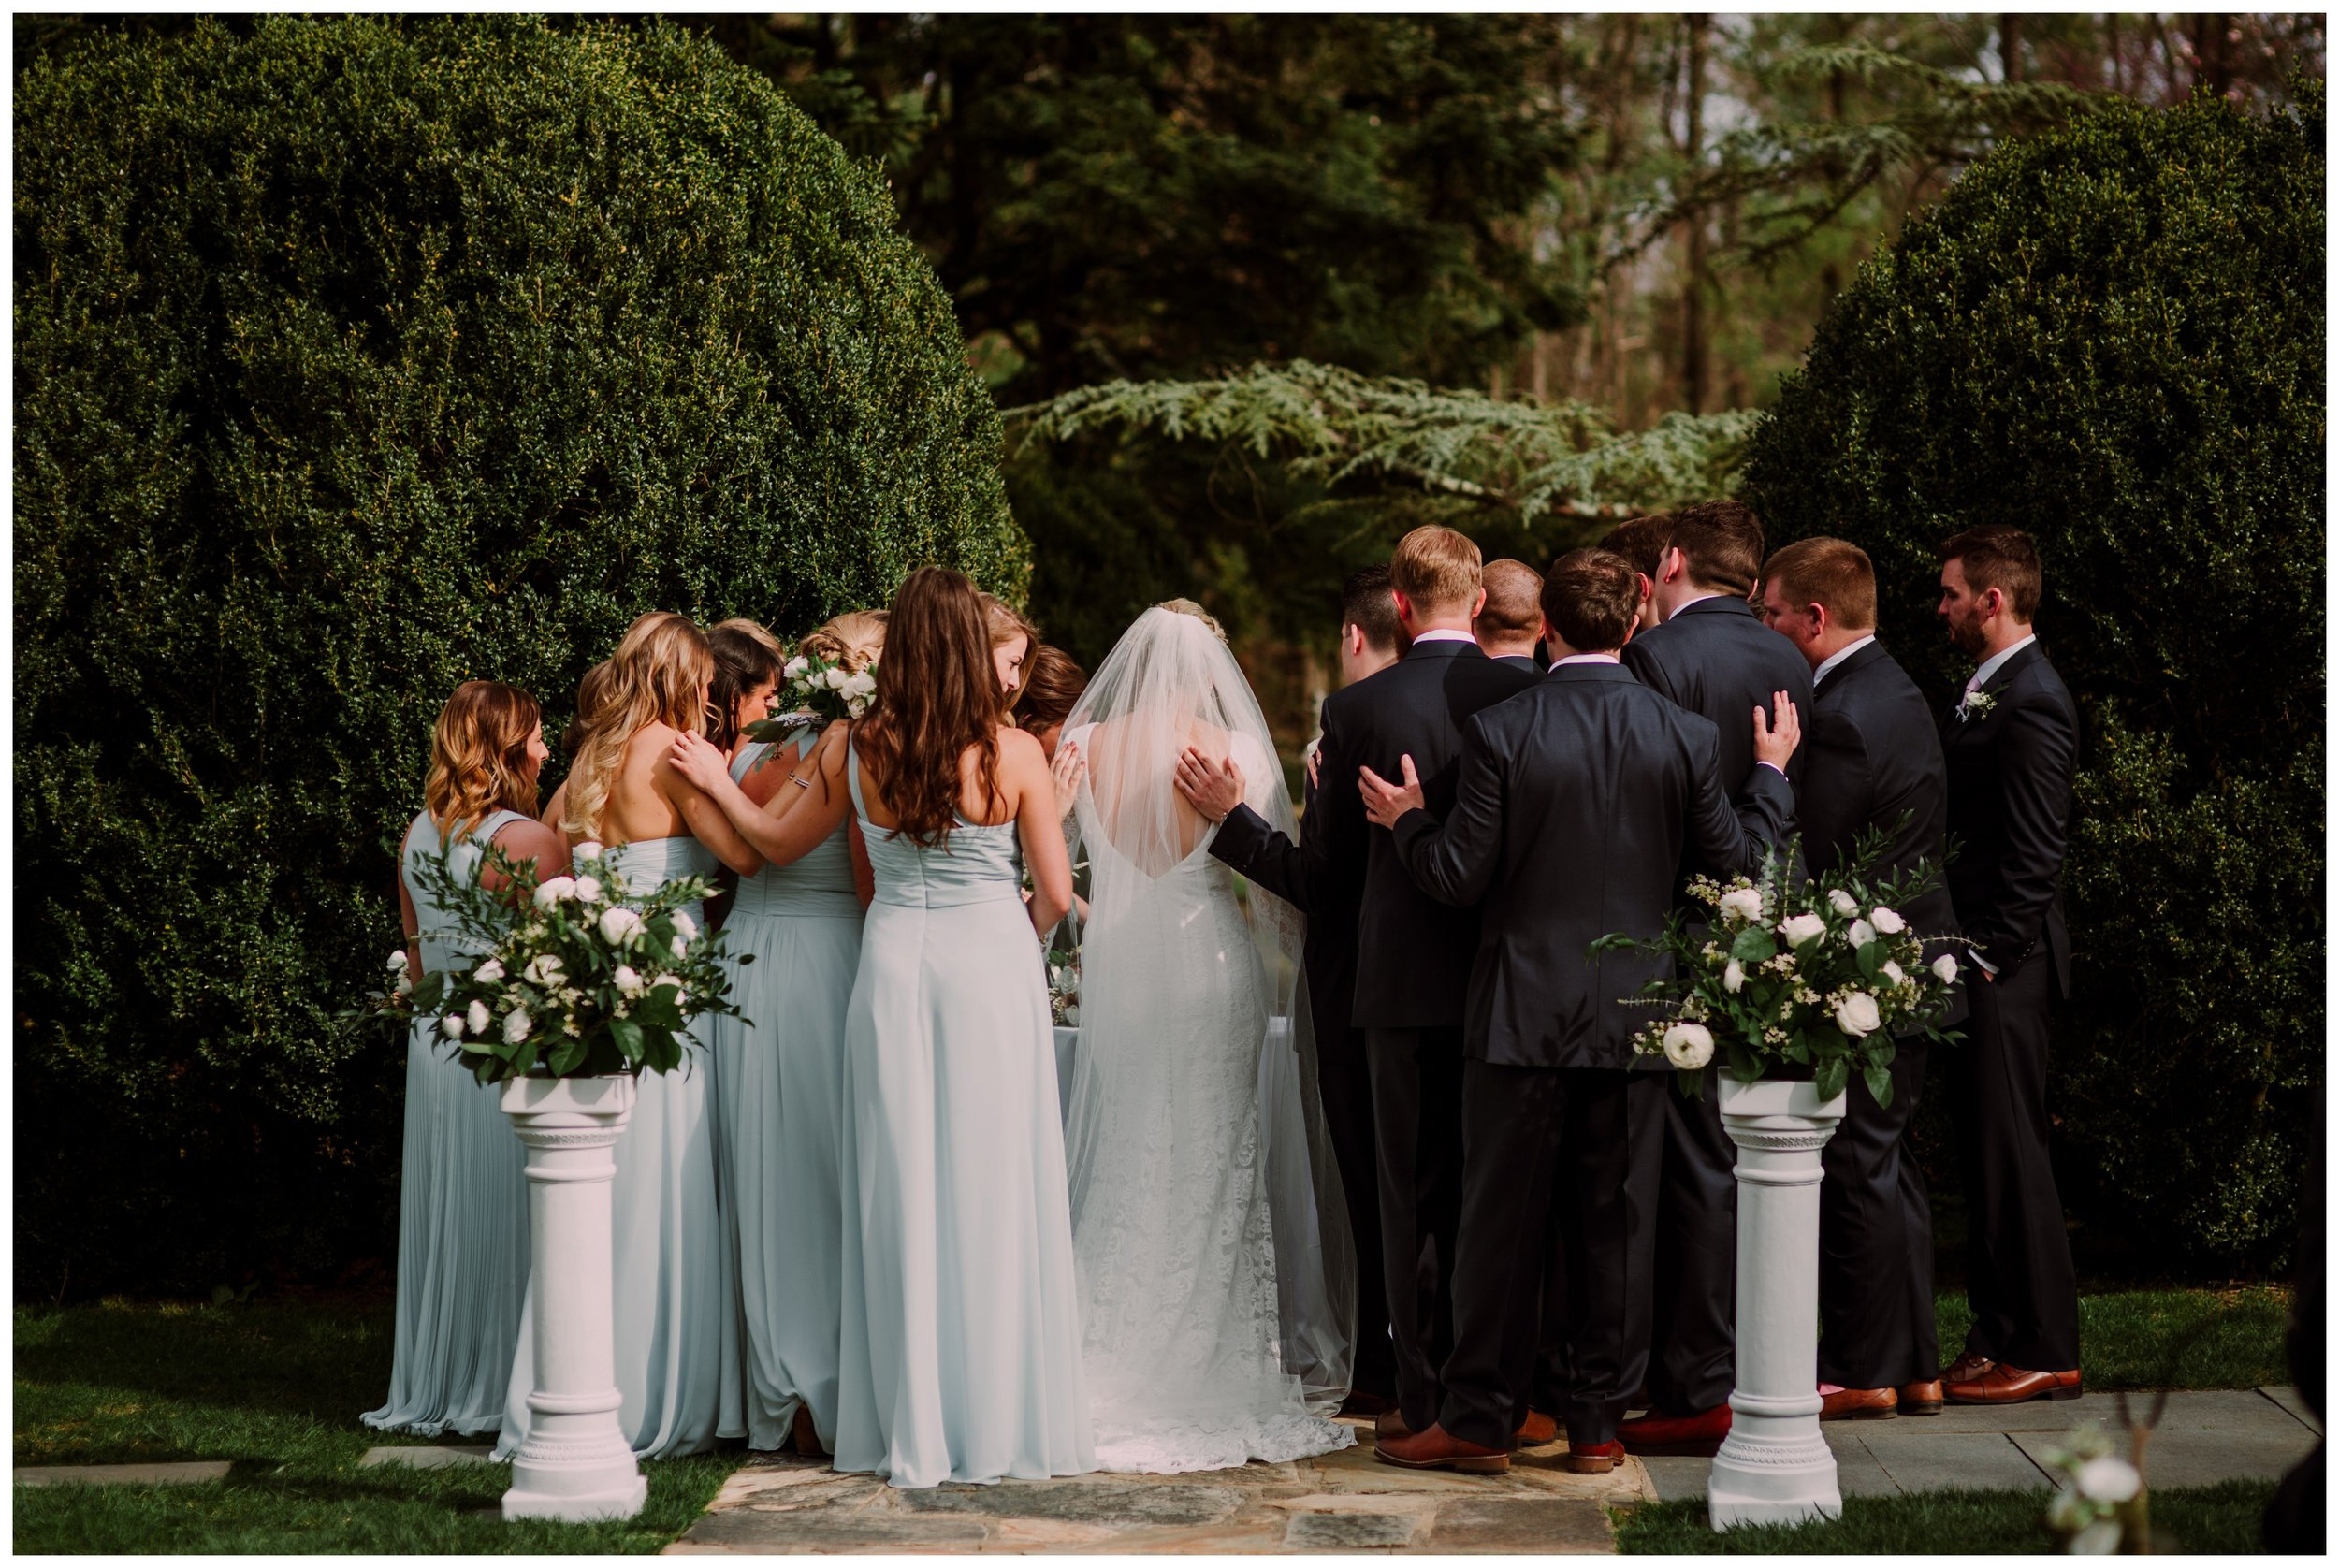 Andrea & Kyle | Traditional Virginia Rust Manor Wedding Highlights | Virginia Wedding Photographer-24.jpg